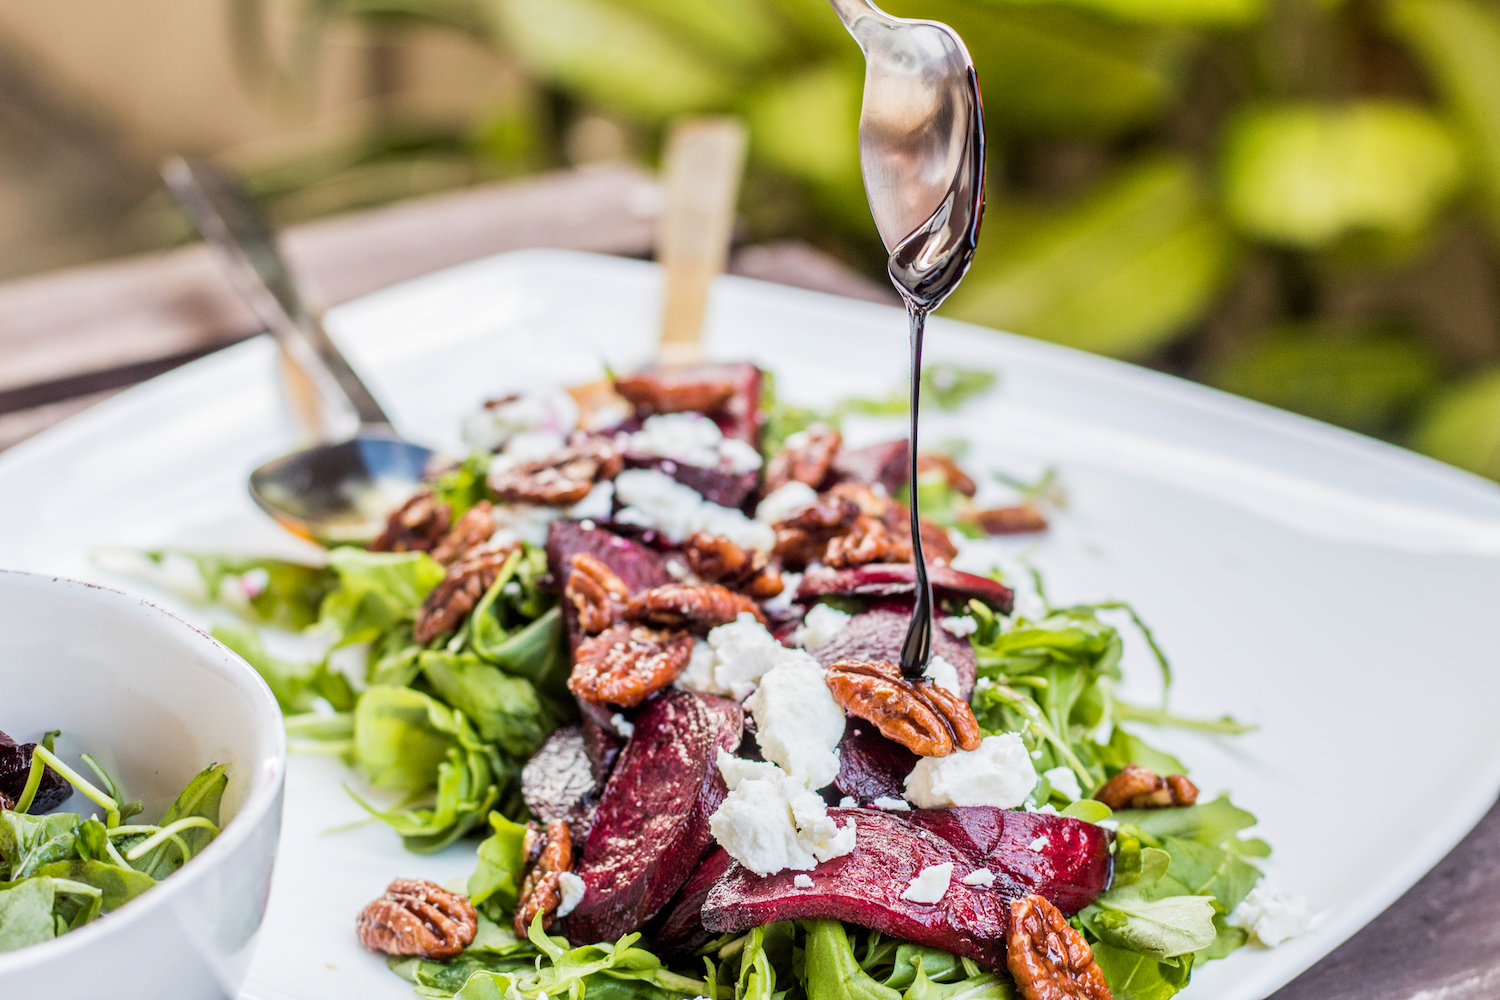 Roasted balsamic beet salad with goat cheese and caramelised pecans